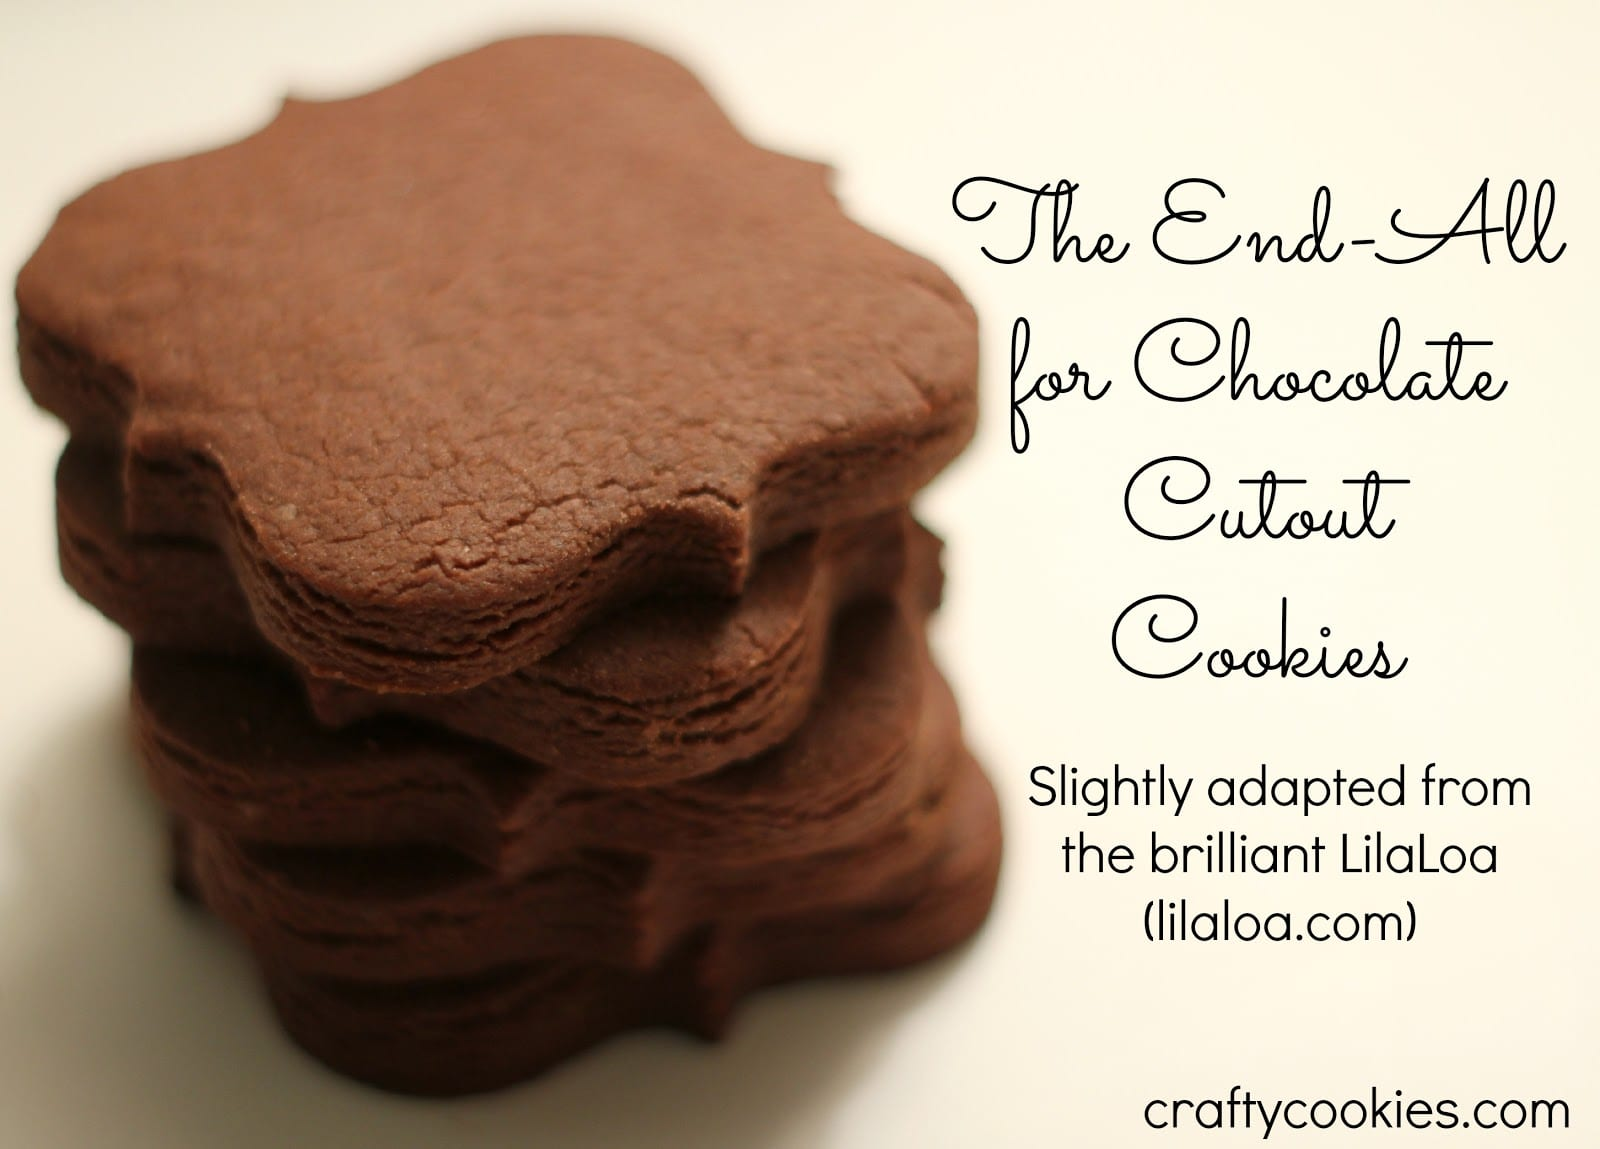 Crafty Cookies  Lilaloa's The End